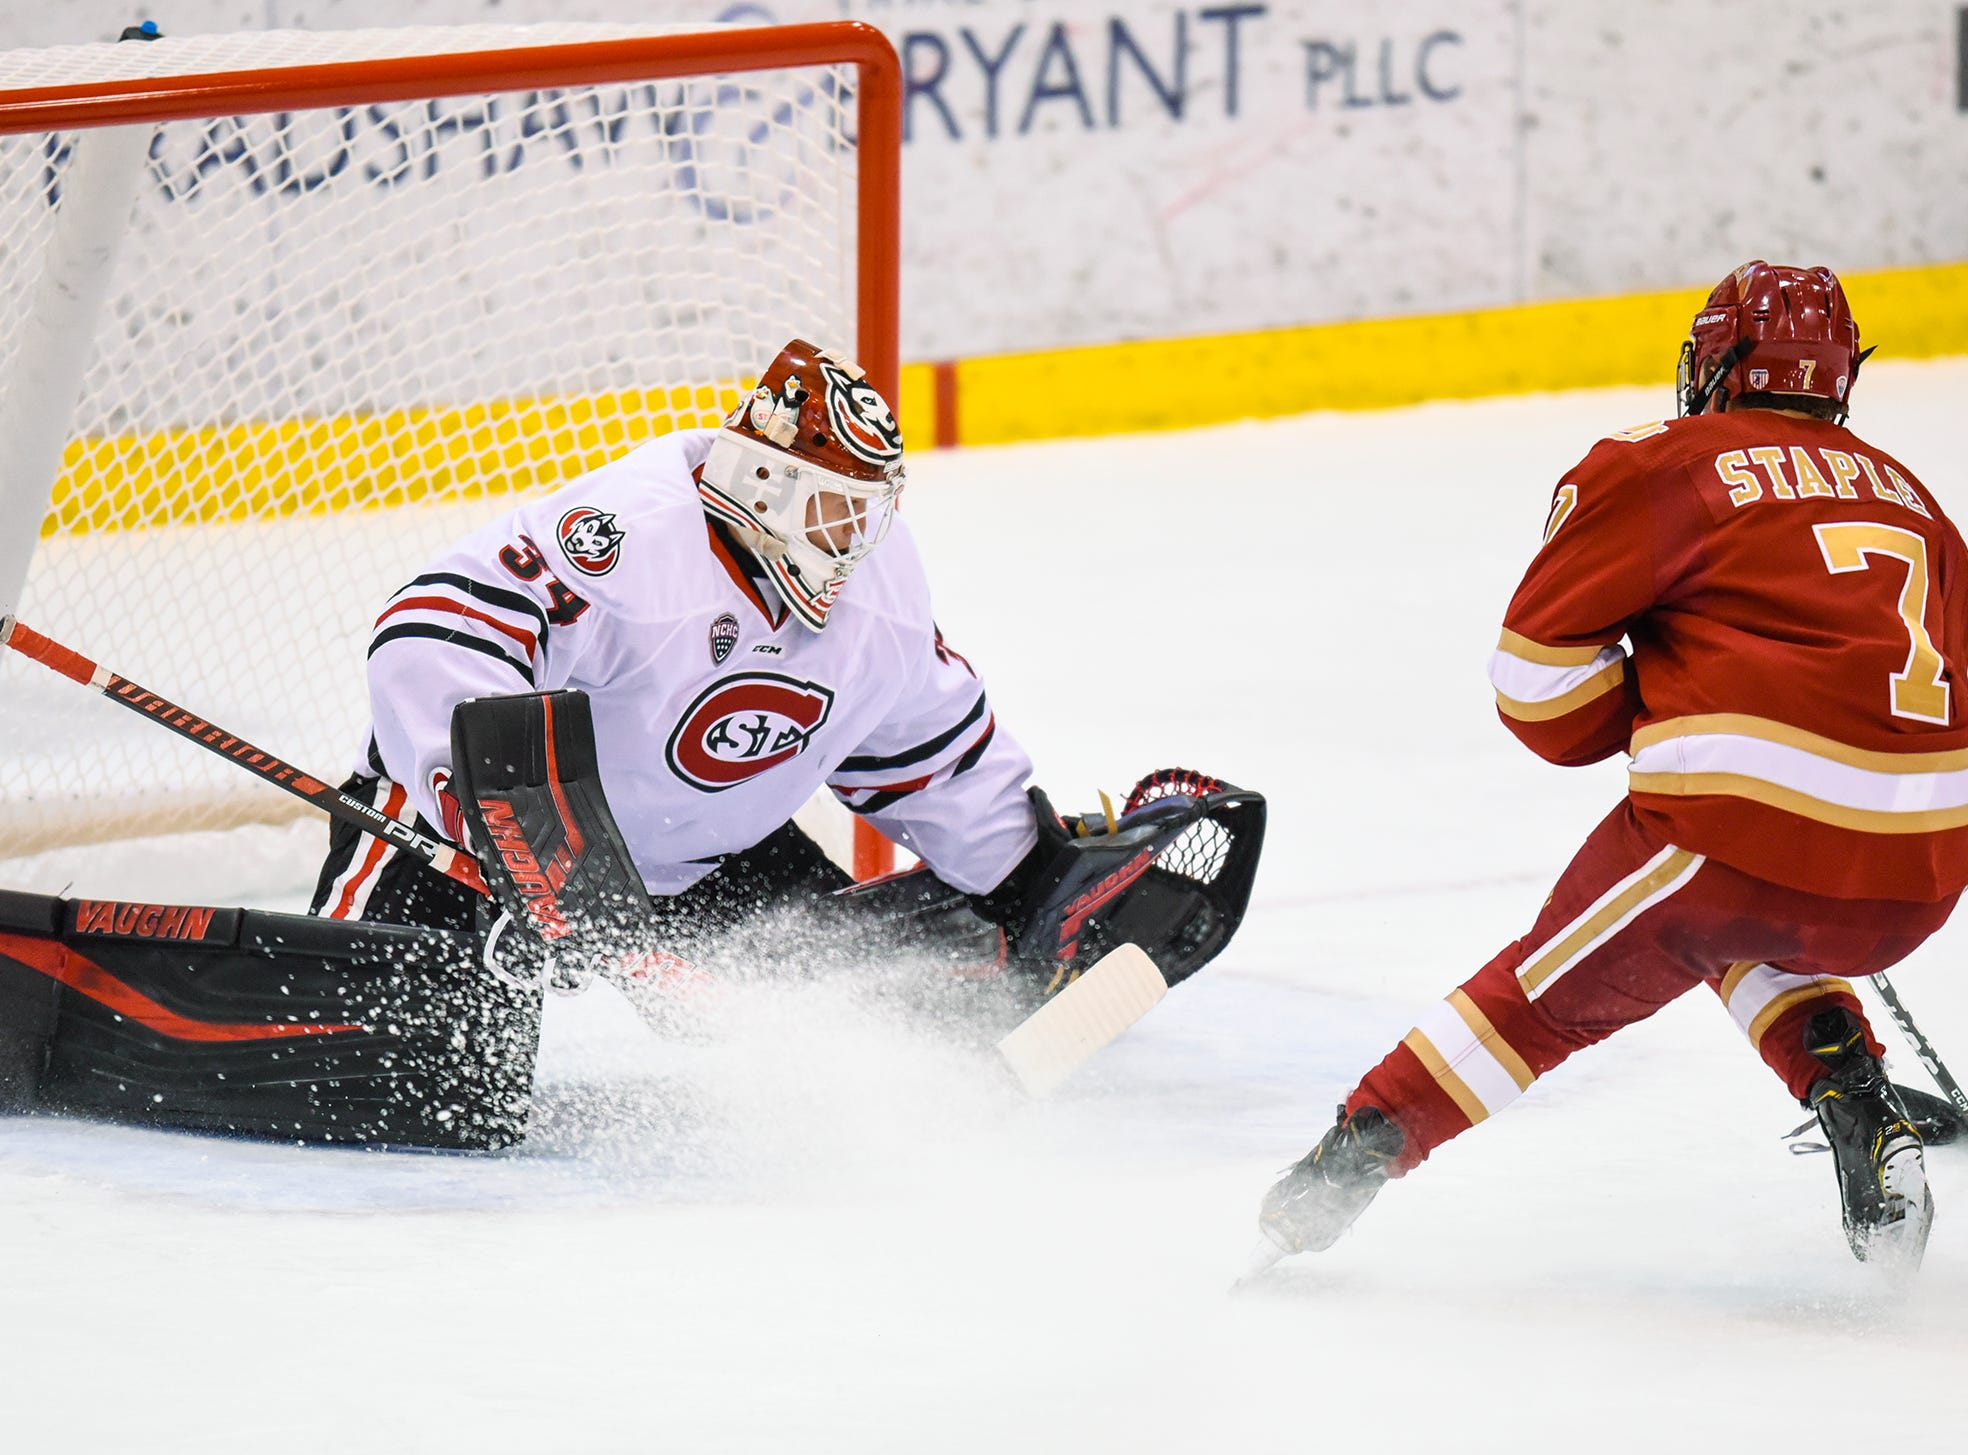 St. Cloud State goaltender David Hrenak concentrates on a shot by Denver's Brett Stapley during the first period of the Friday, Nov. 9, game at the Herb Brooks National Hockey Center in St. Cloud.